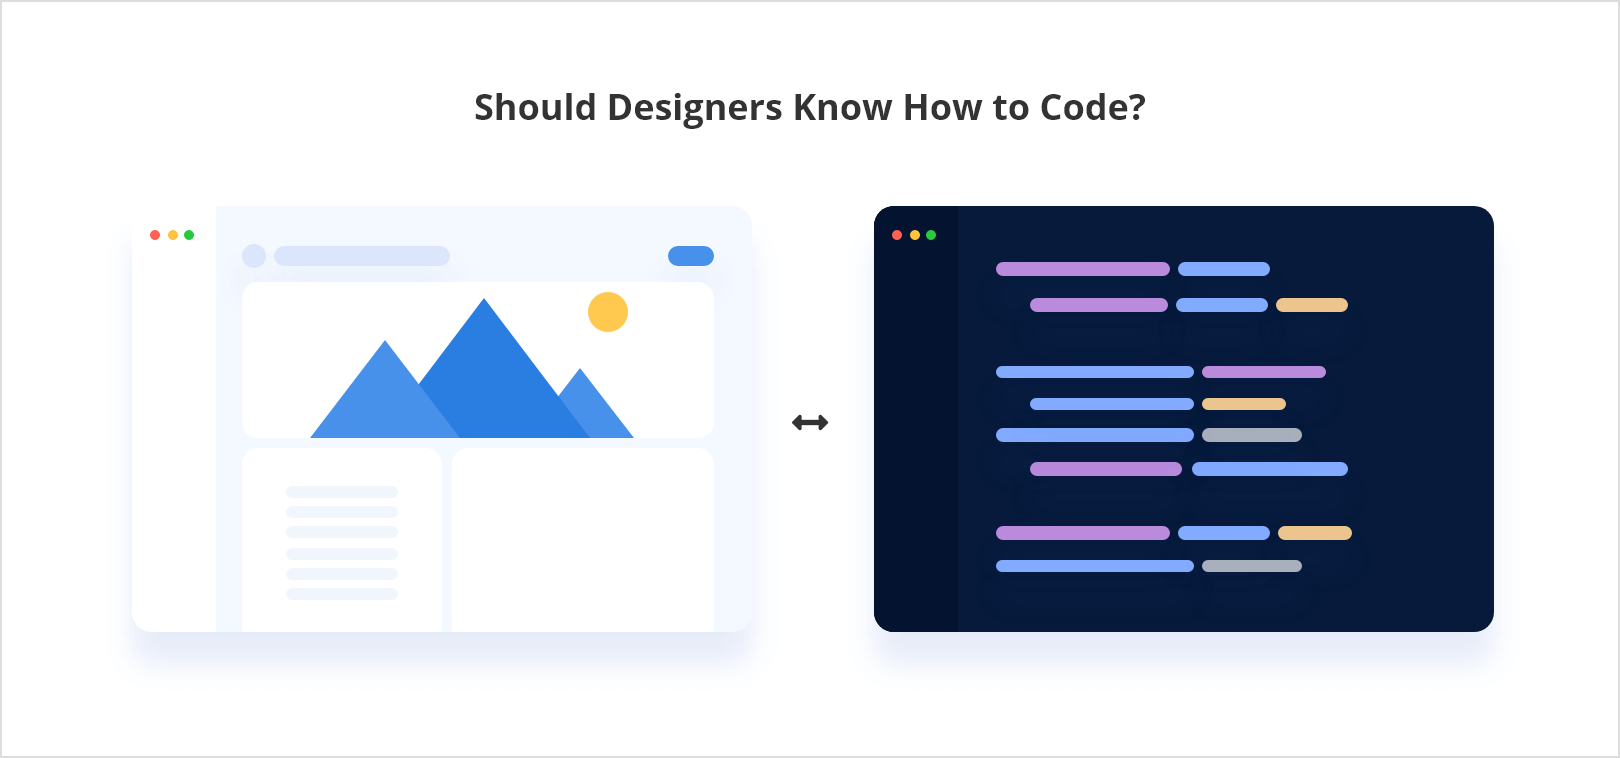 Should designers know how to code